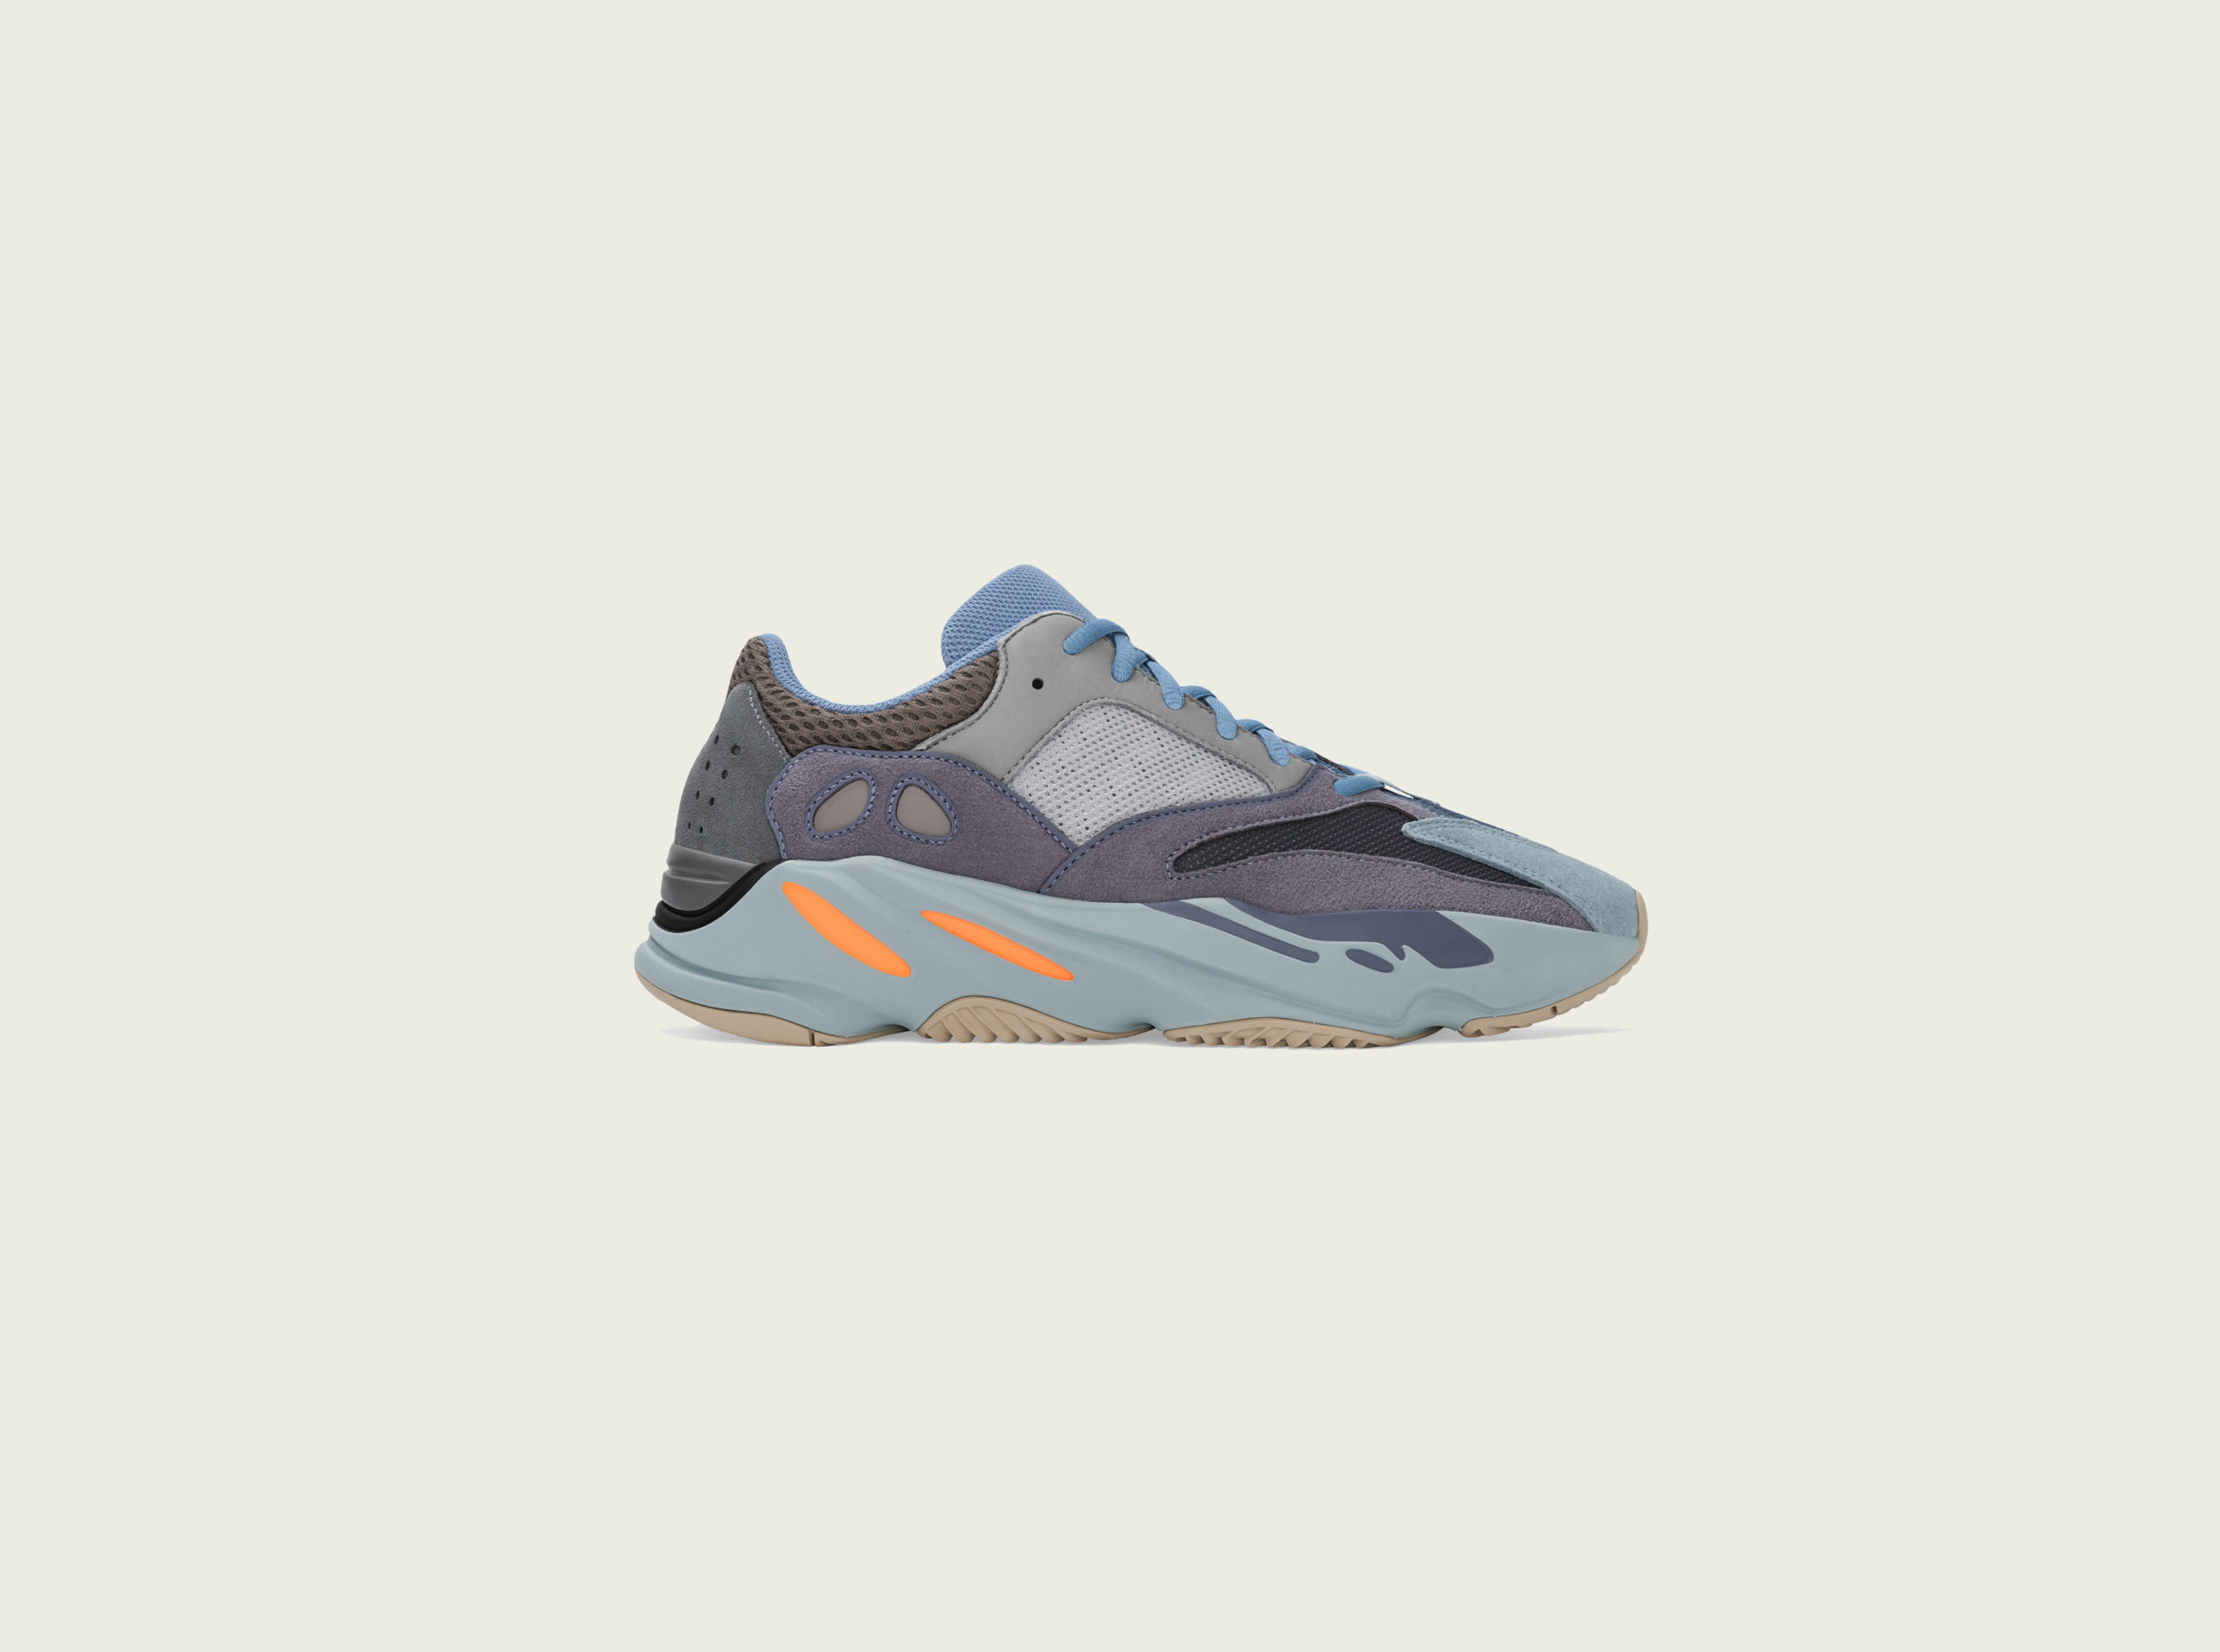 adidas x KANYE WEST Announce YEEZY BOOST 700 Carbon Blue